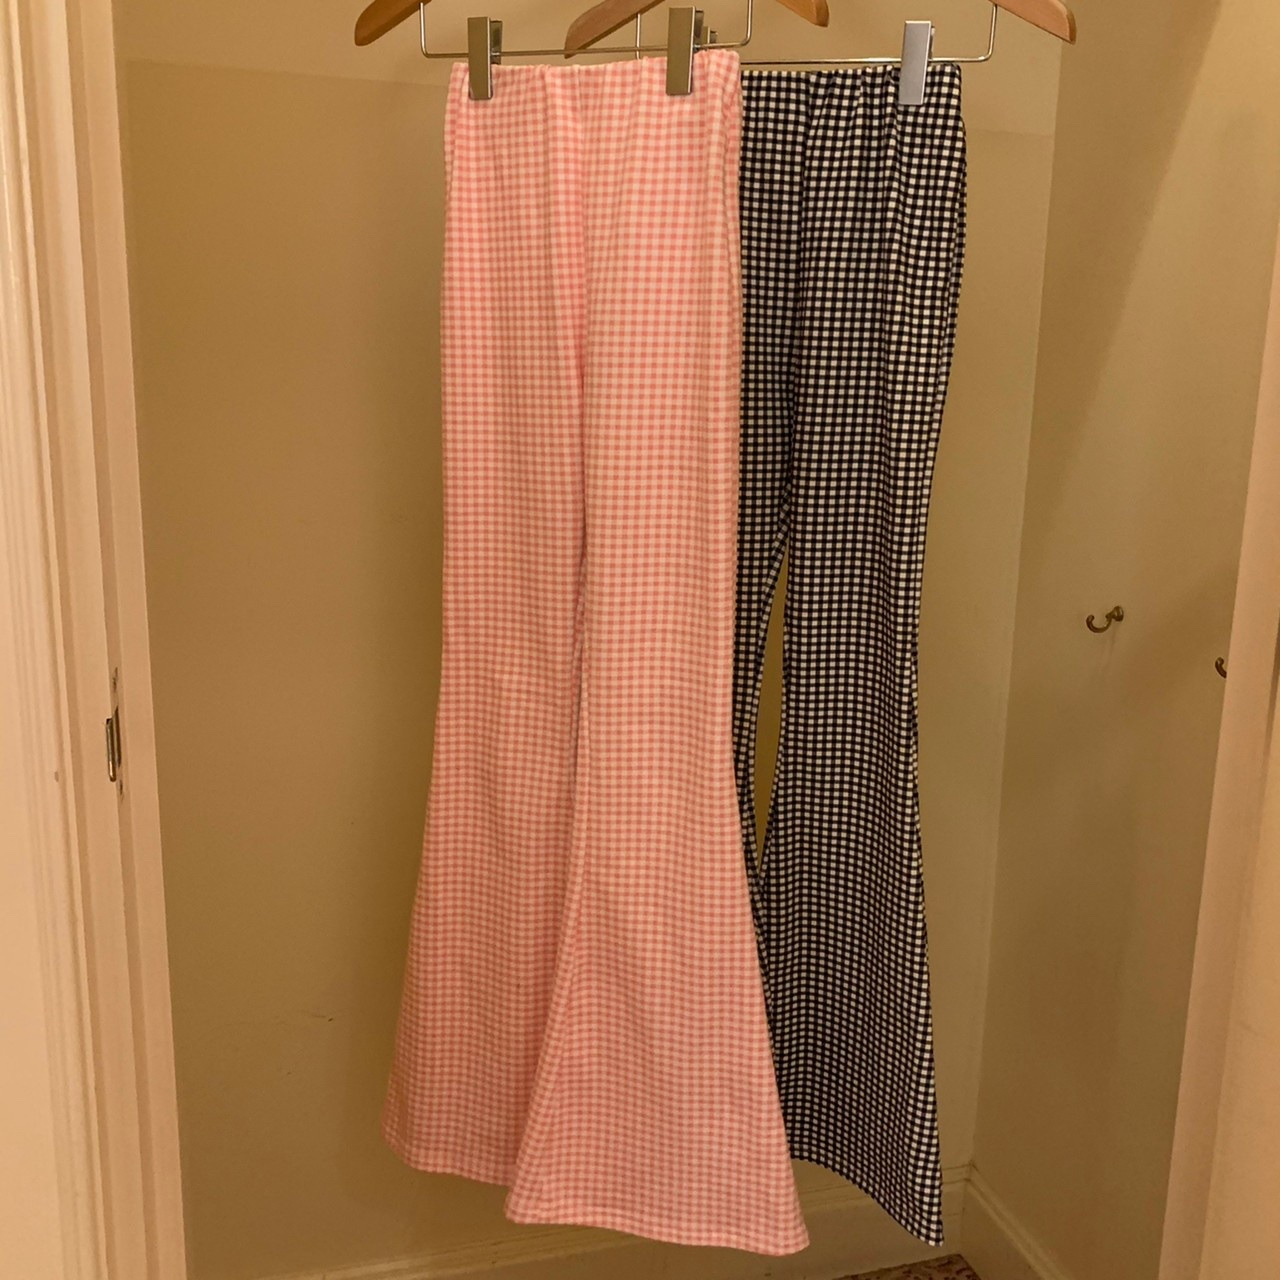 【Belle】LAST2 gingham check flare pants / pink